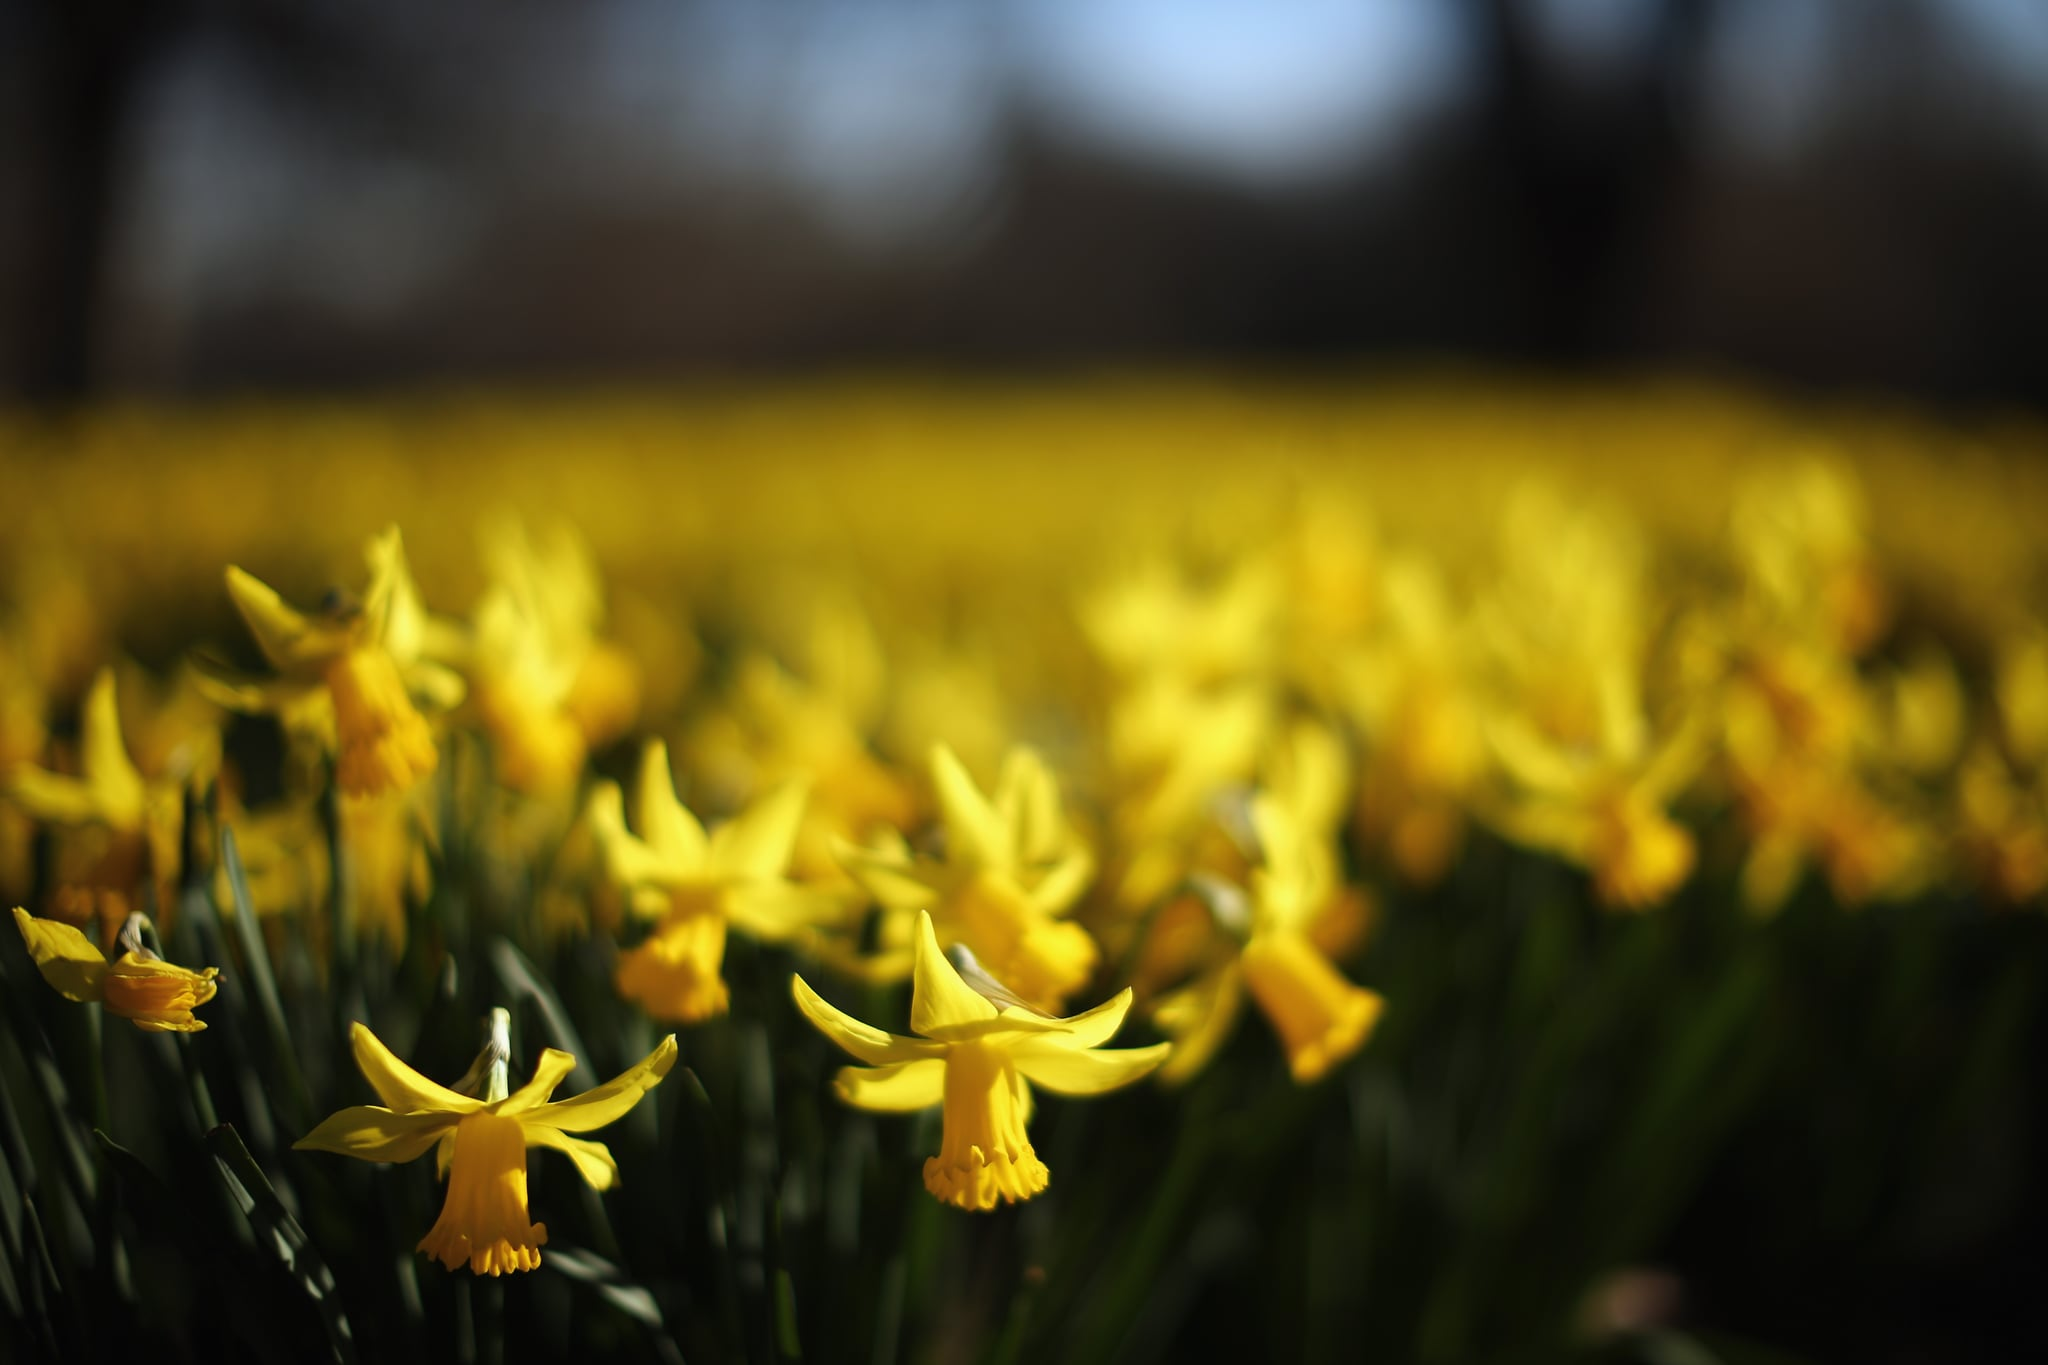 Bright yellow daffodils were popping up in London.